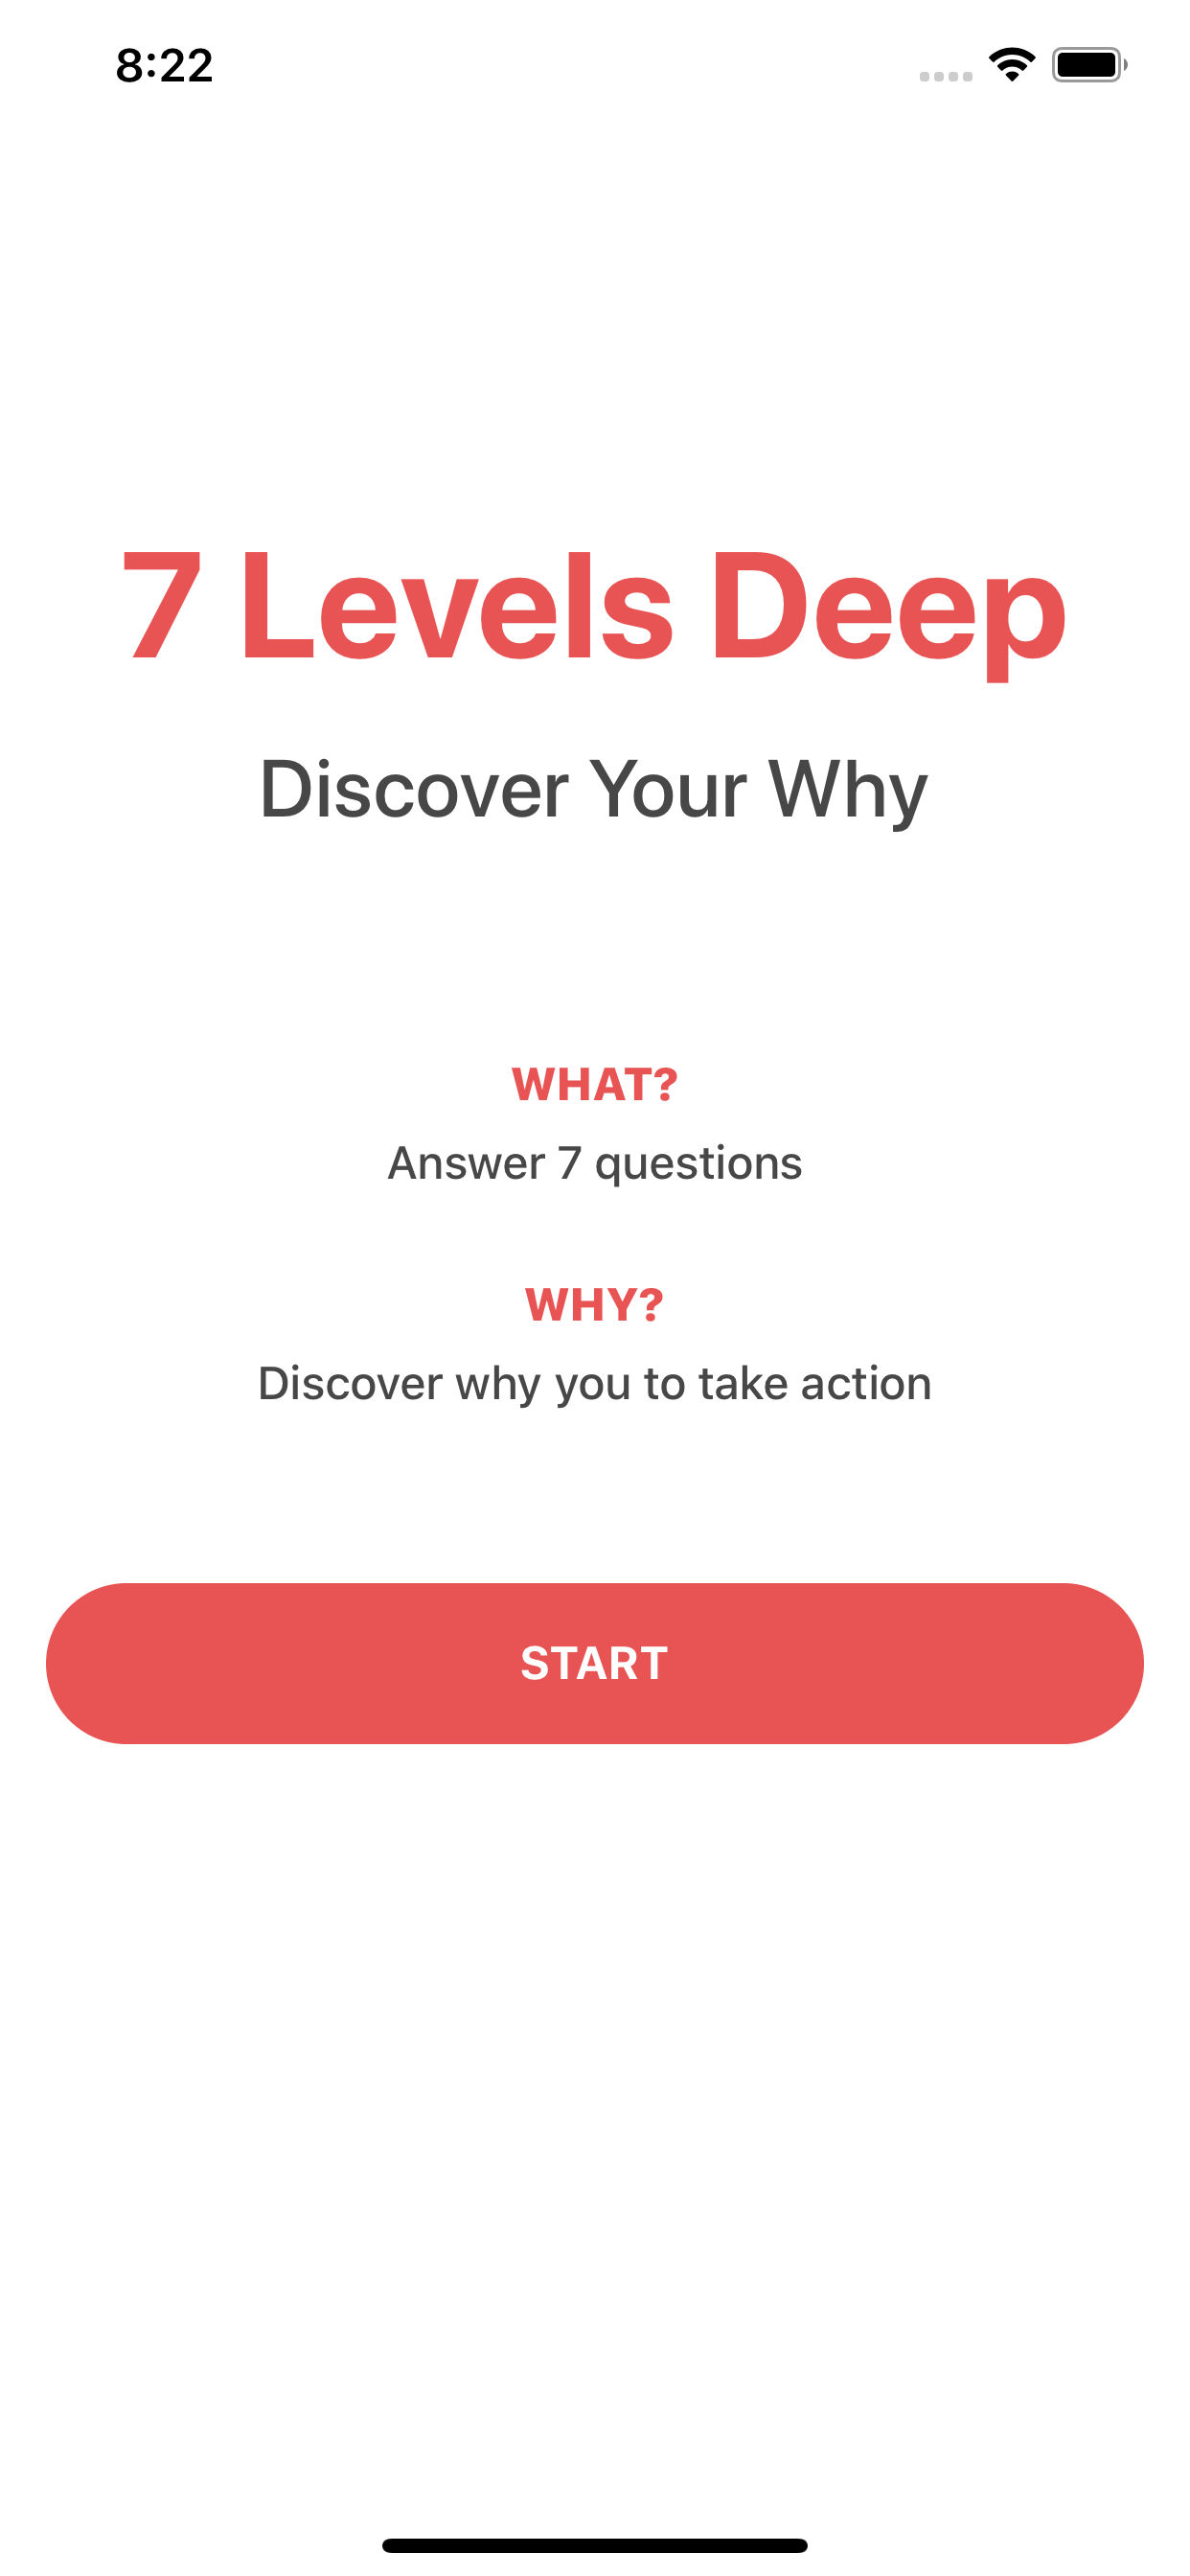 7 Levels Deep - Discover Your Why